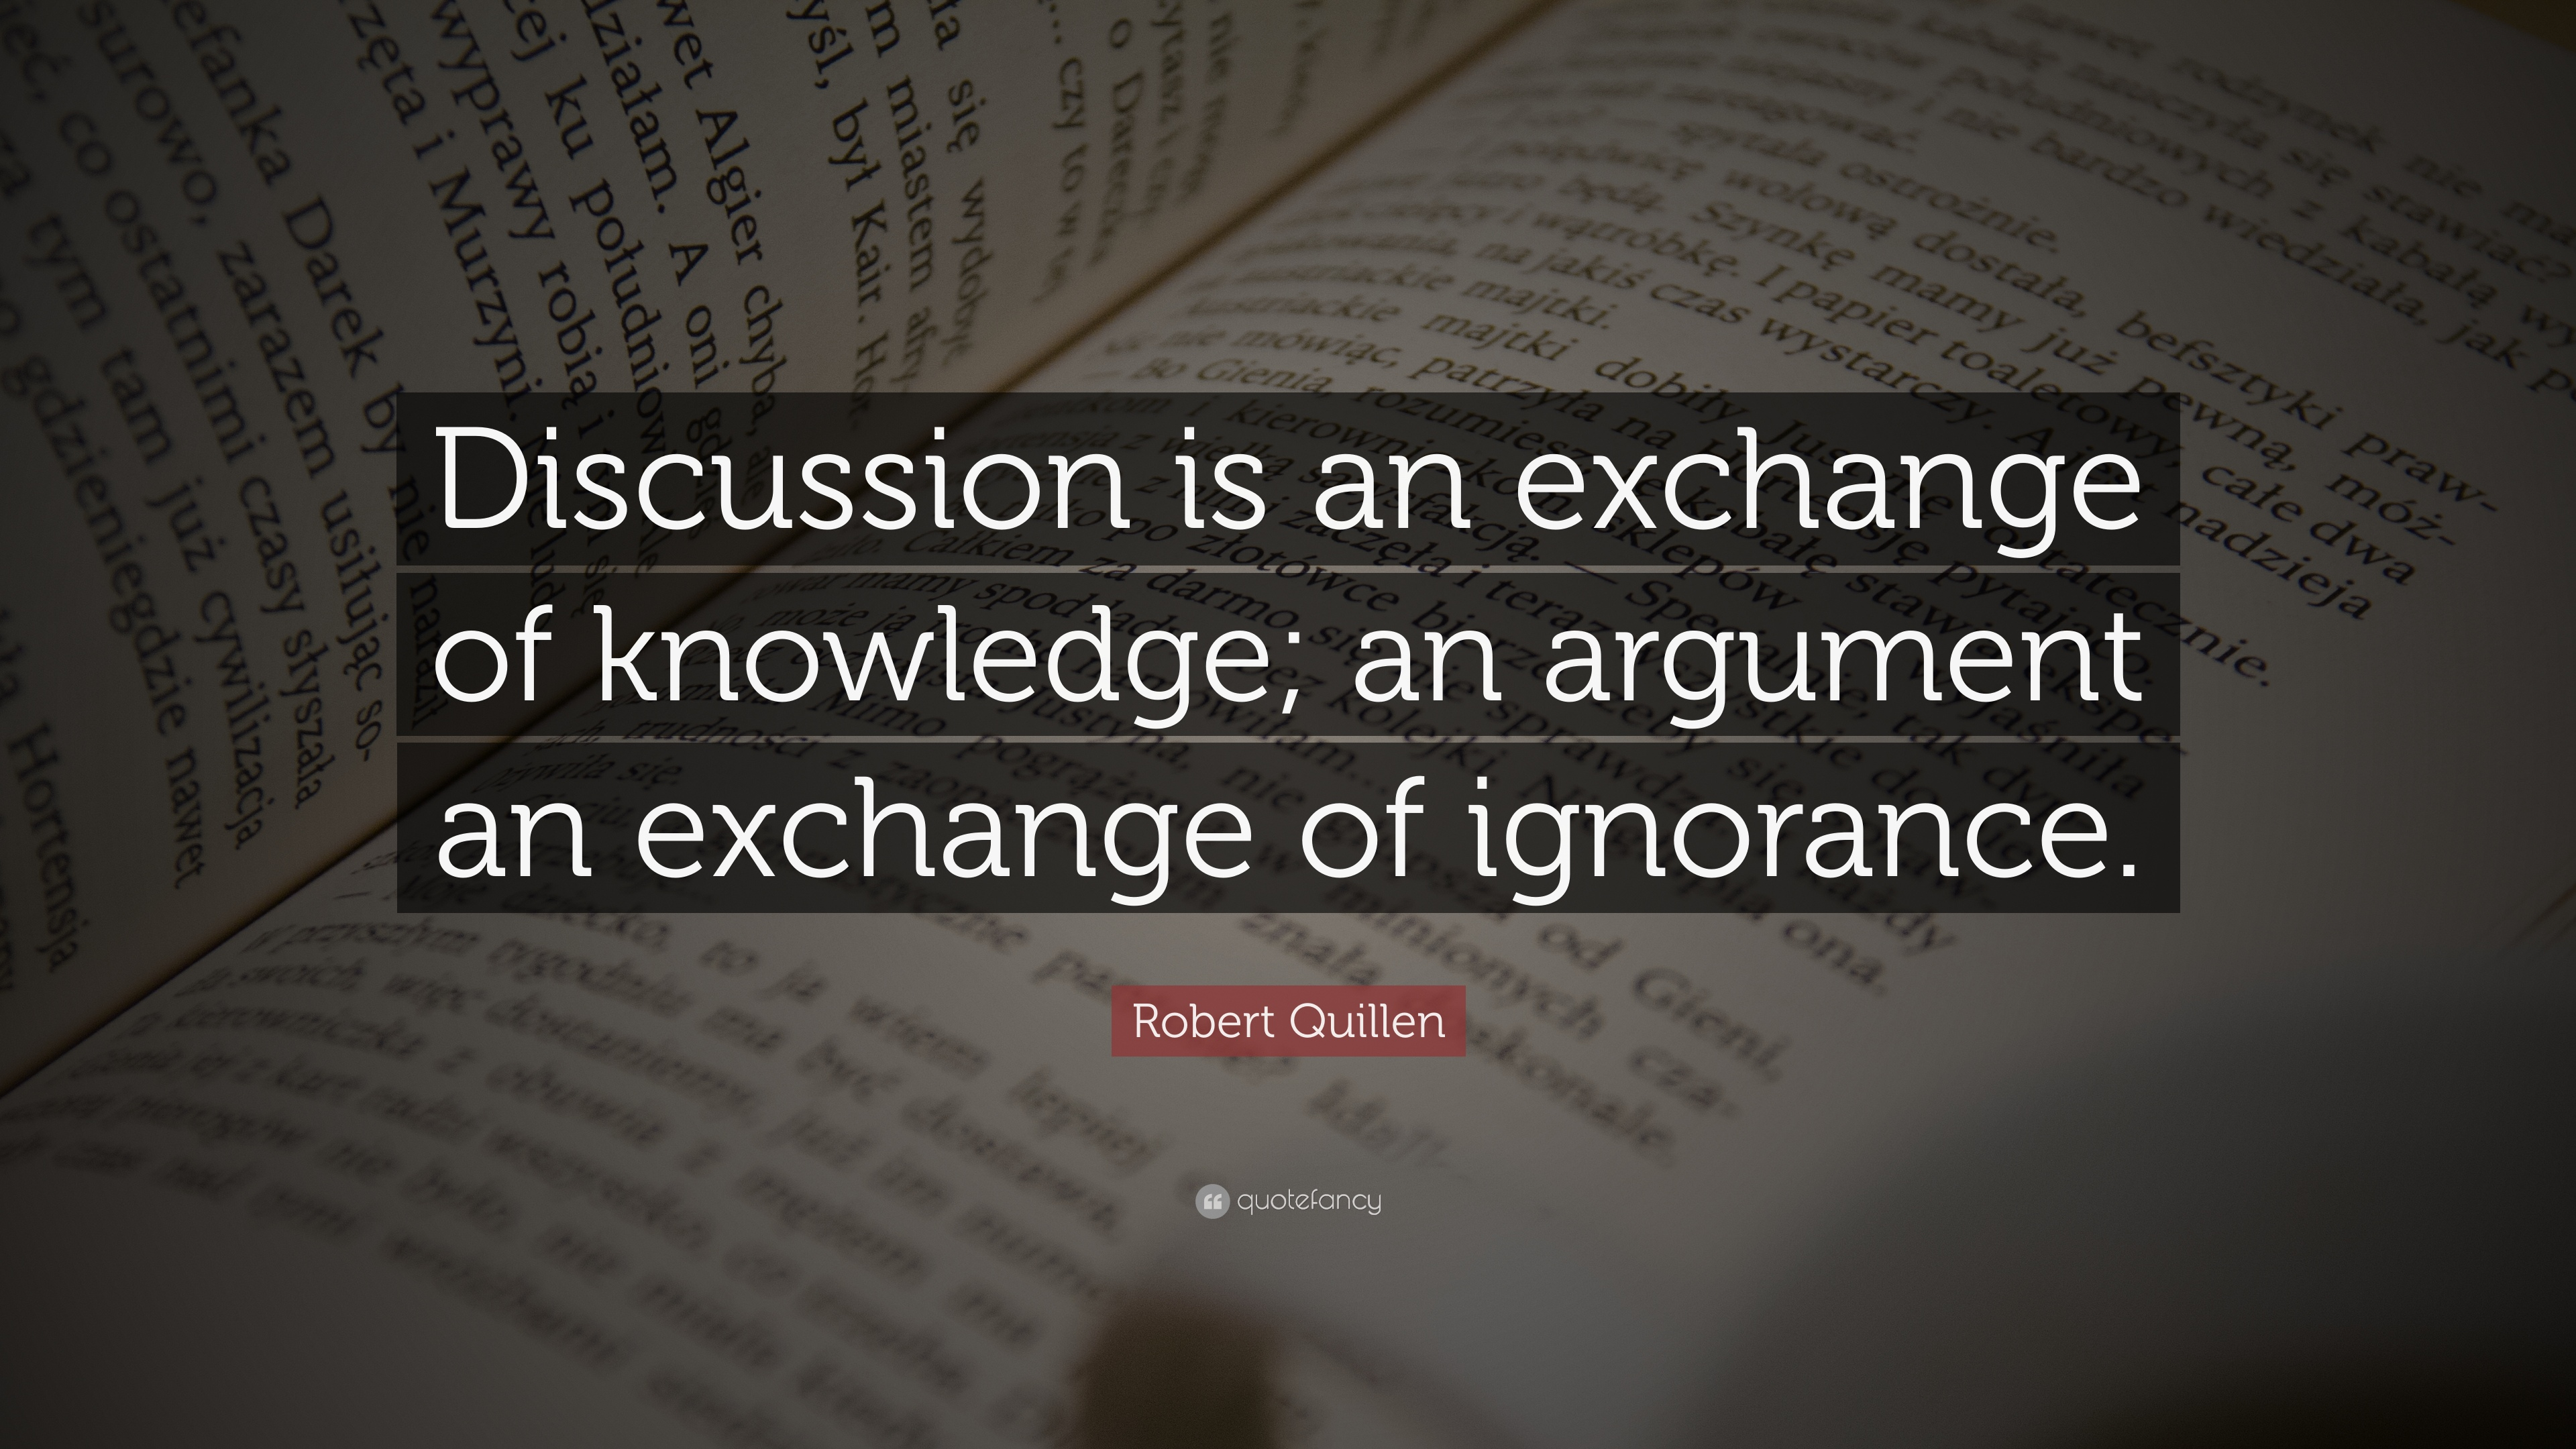 1445151-Robert-Quillen-Quote-Discussion-is-an-exchange-of-knowledge-an